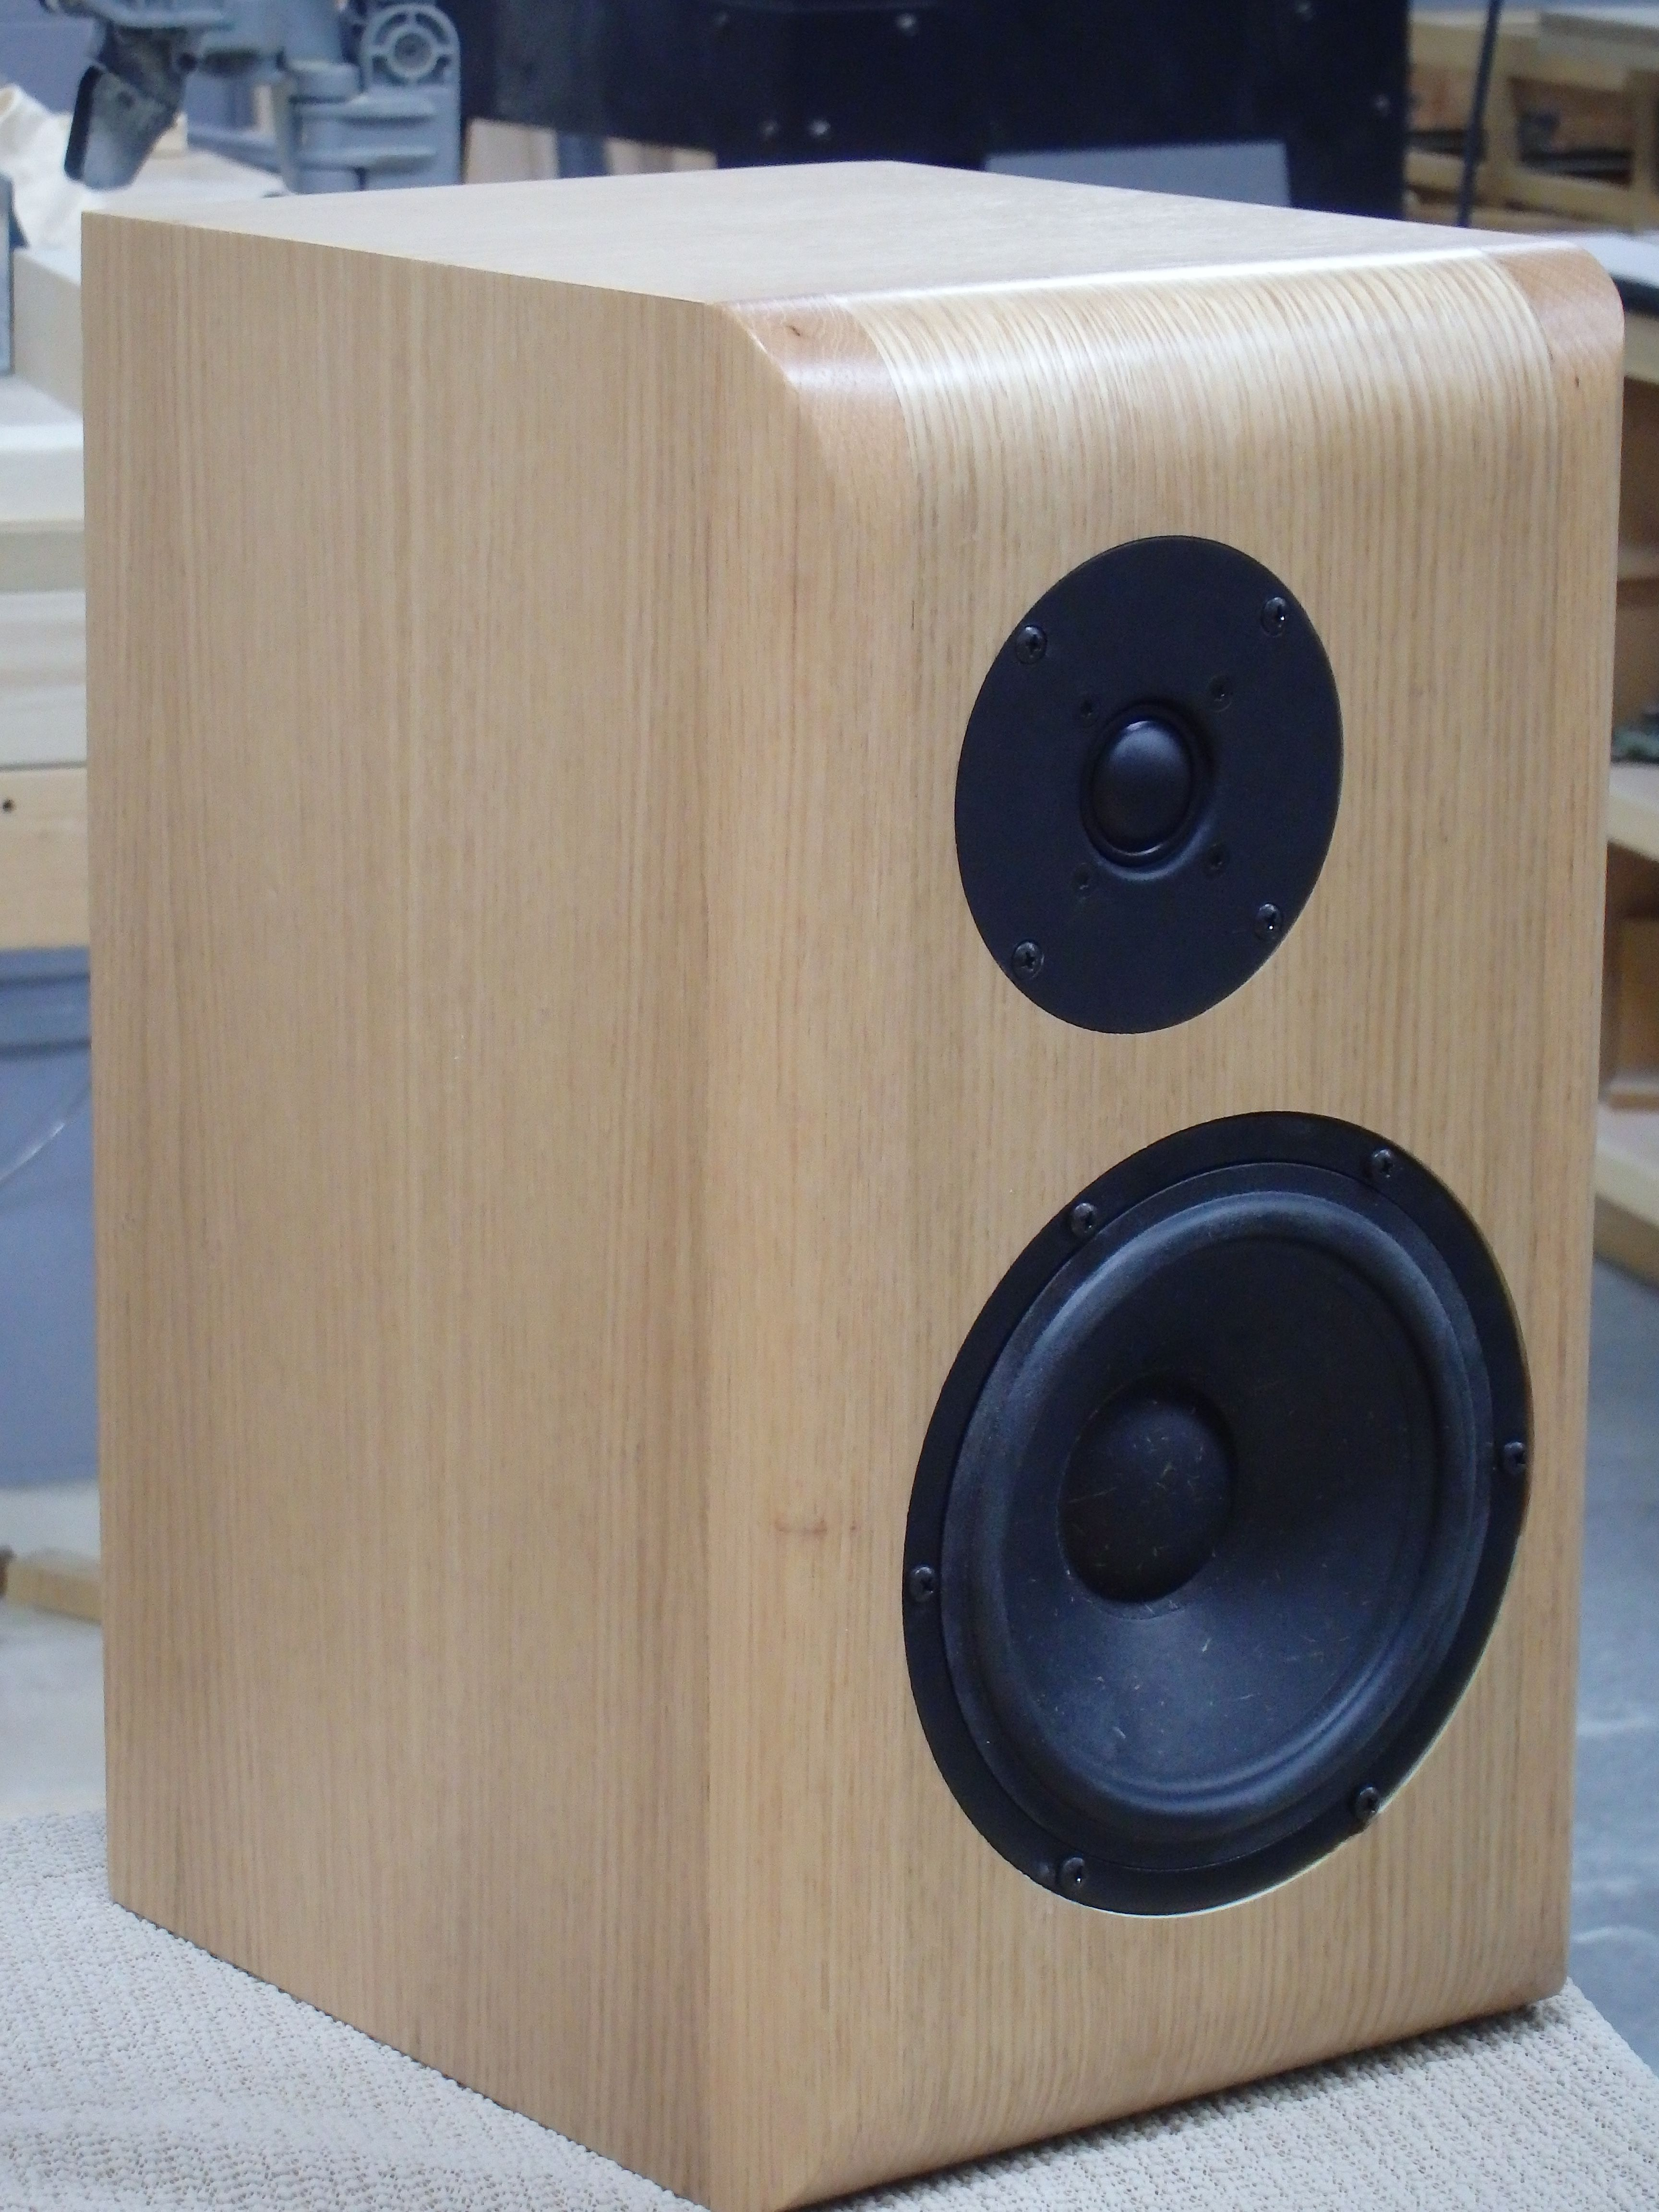 SR71 Diy speaker kit from Madisound  Nice sound from Seas drivers in